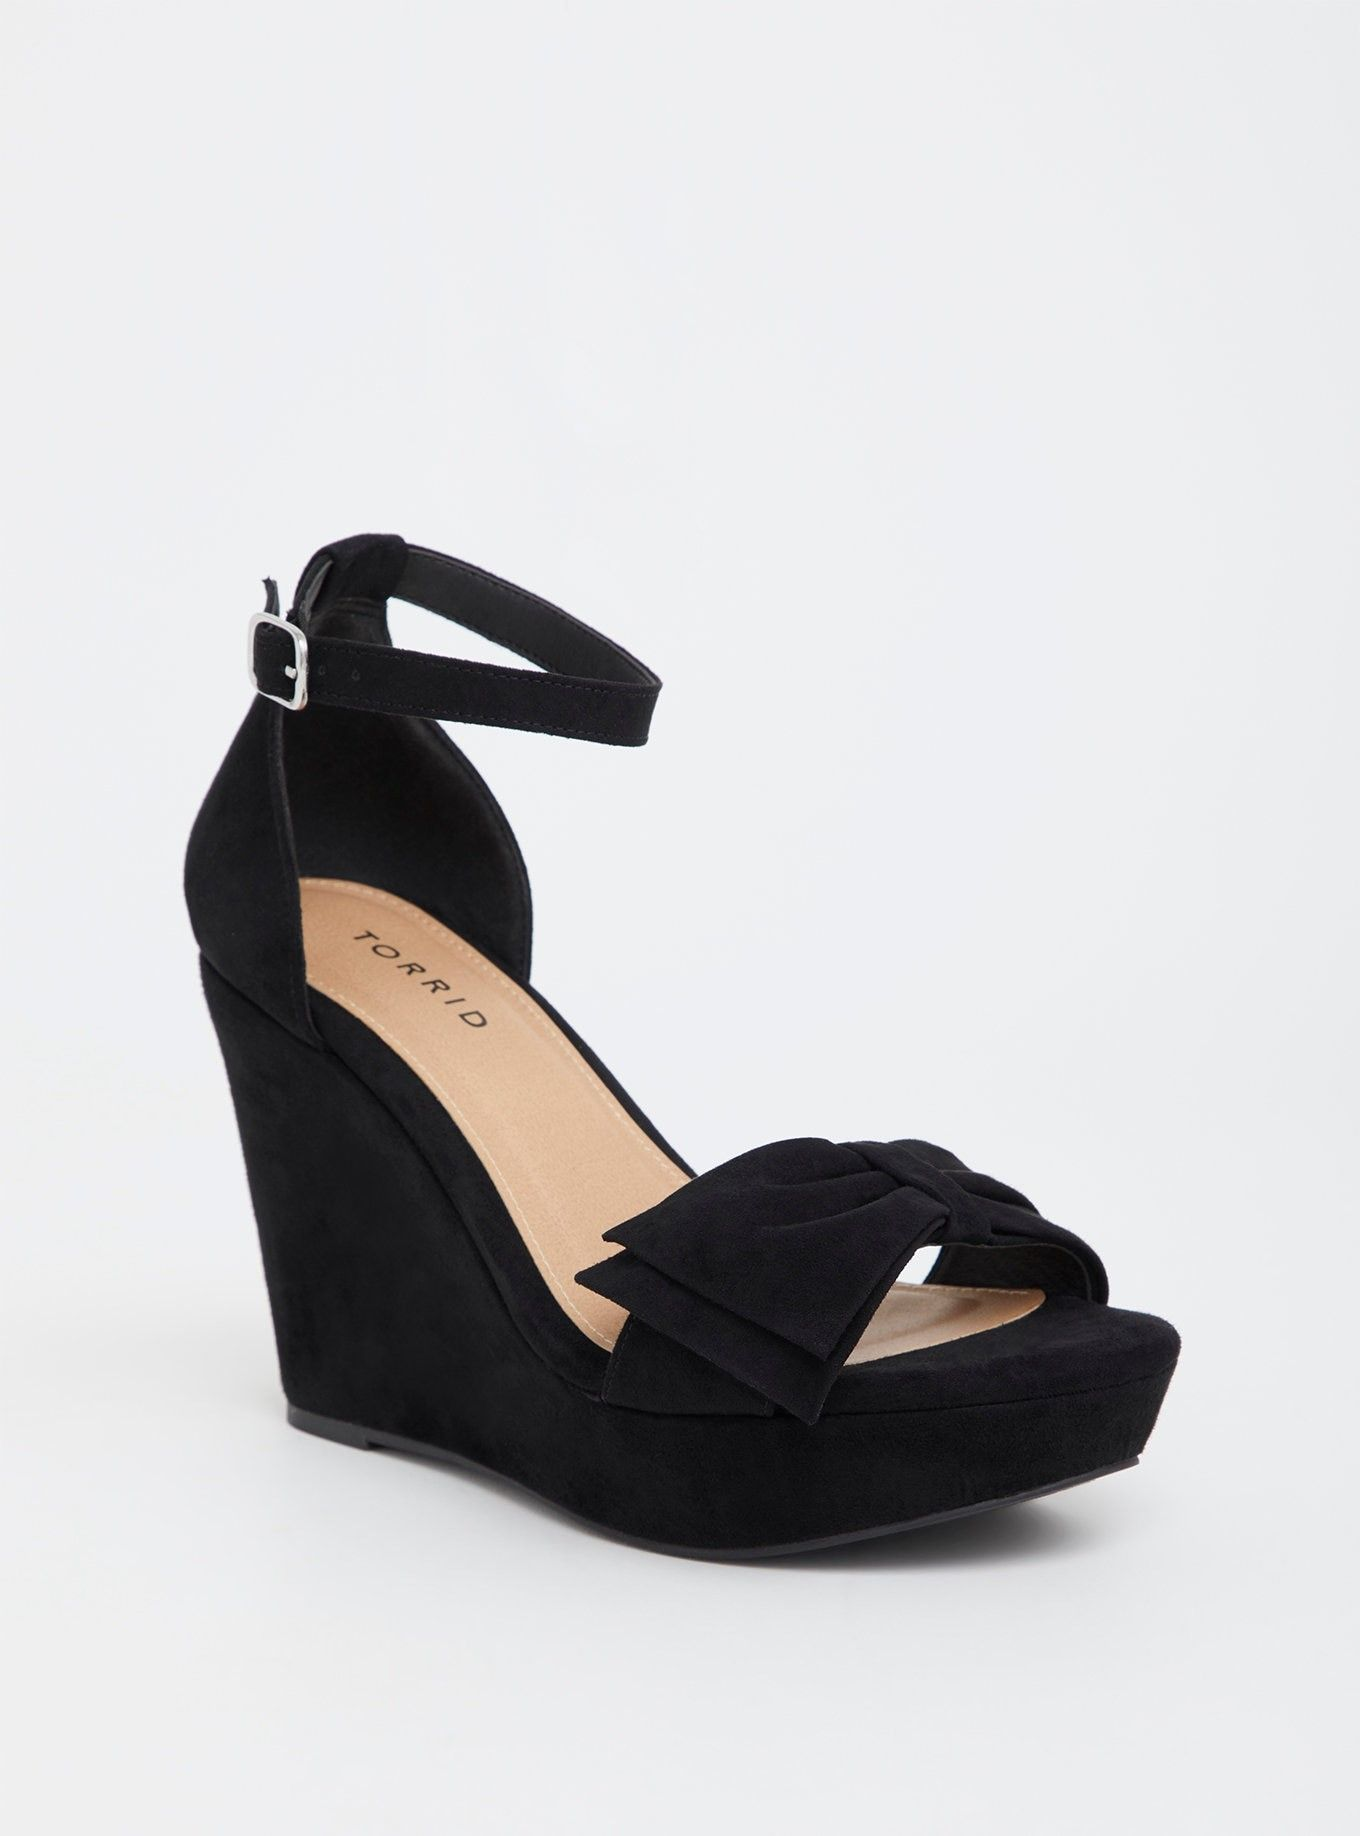 1481e779484 Black Faux Suede Bow Wedge Sandal (Wide Width) - Soft faux suede has a luxe  finish on a wedge platform sandal that has a girlie bow toe strap.